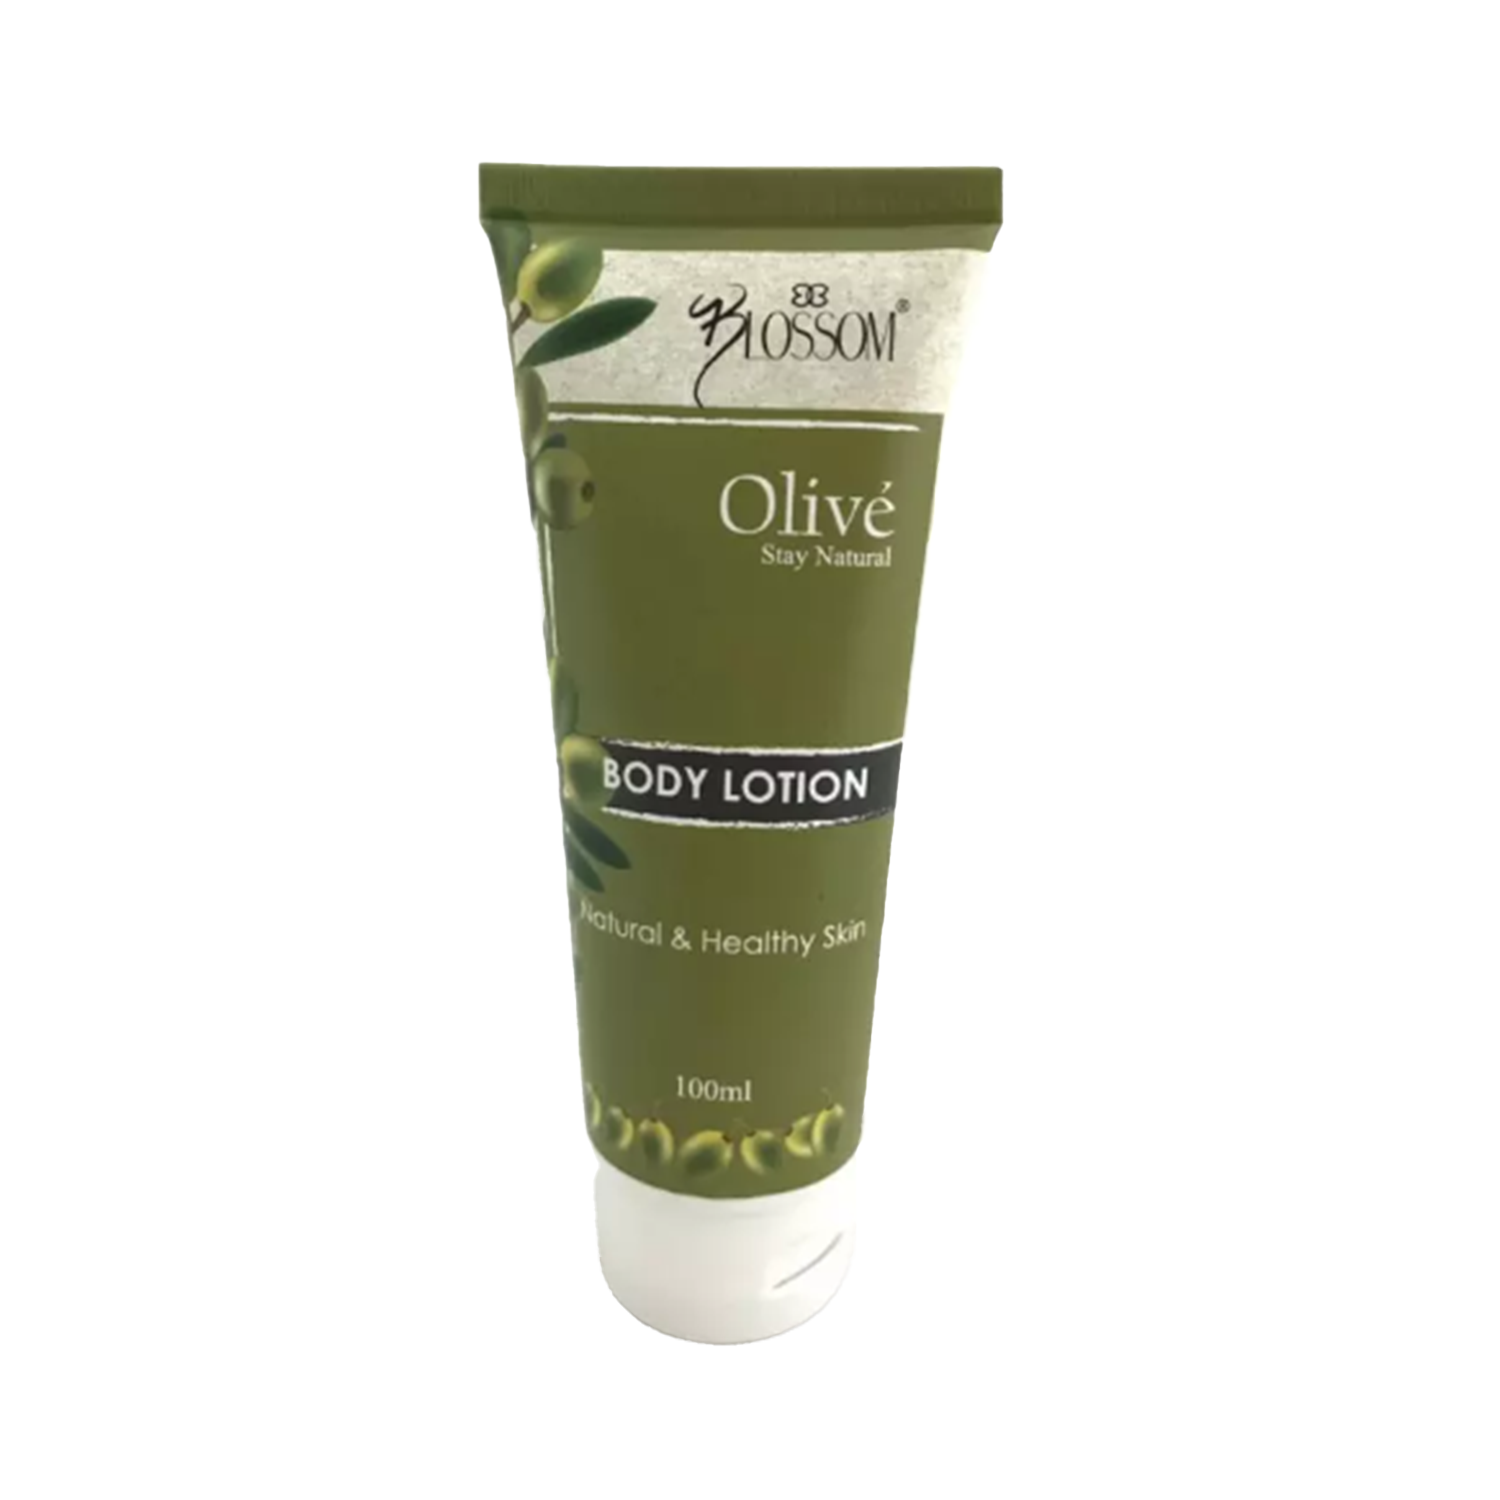 Blossom Hand & Body Lotion - Olive Oil 100Ml